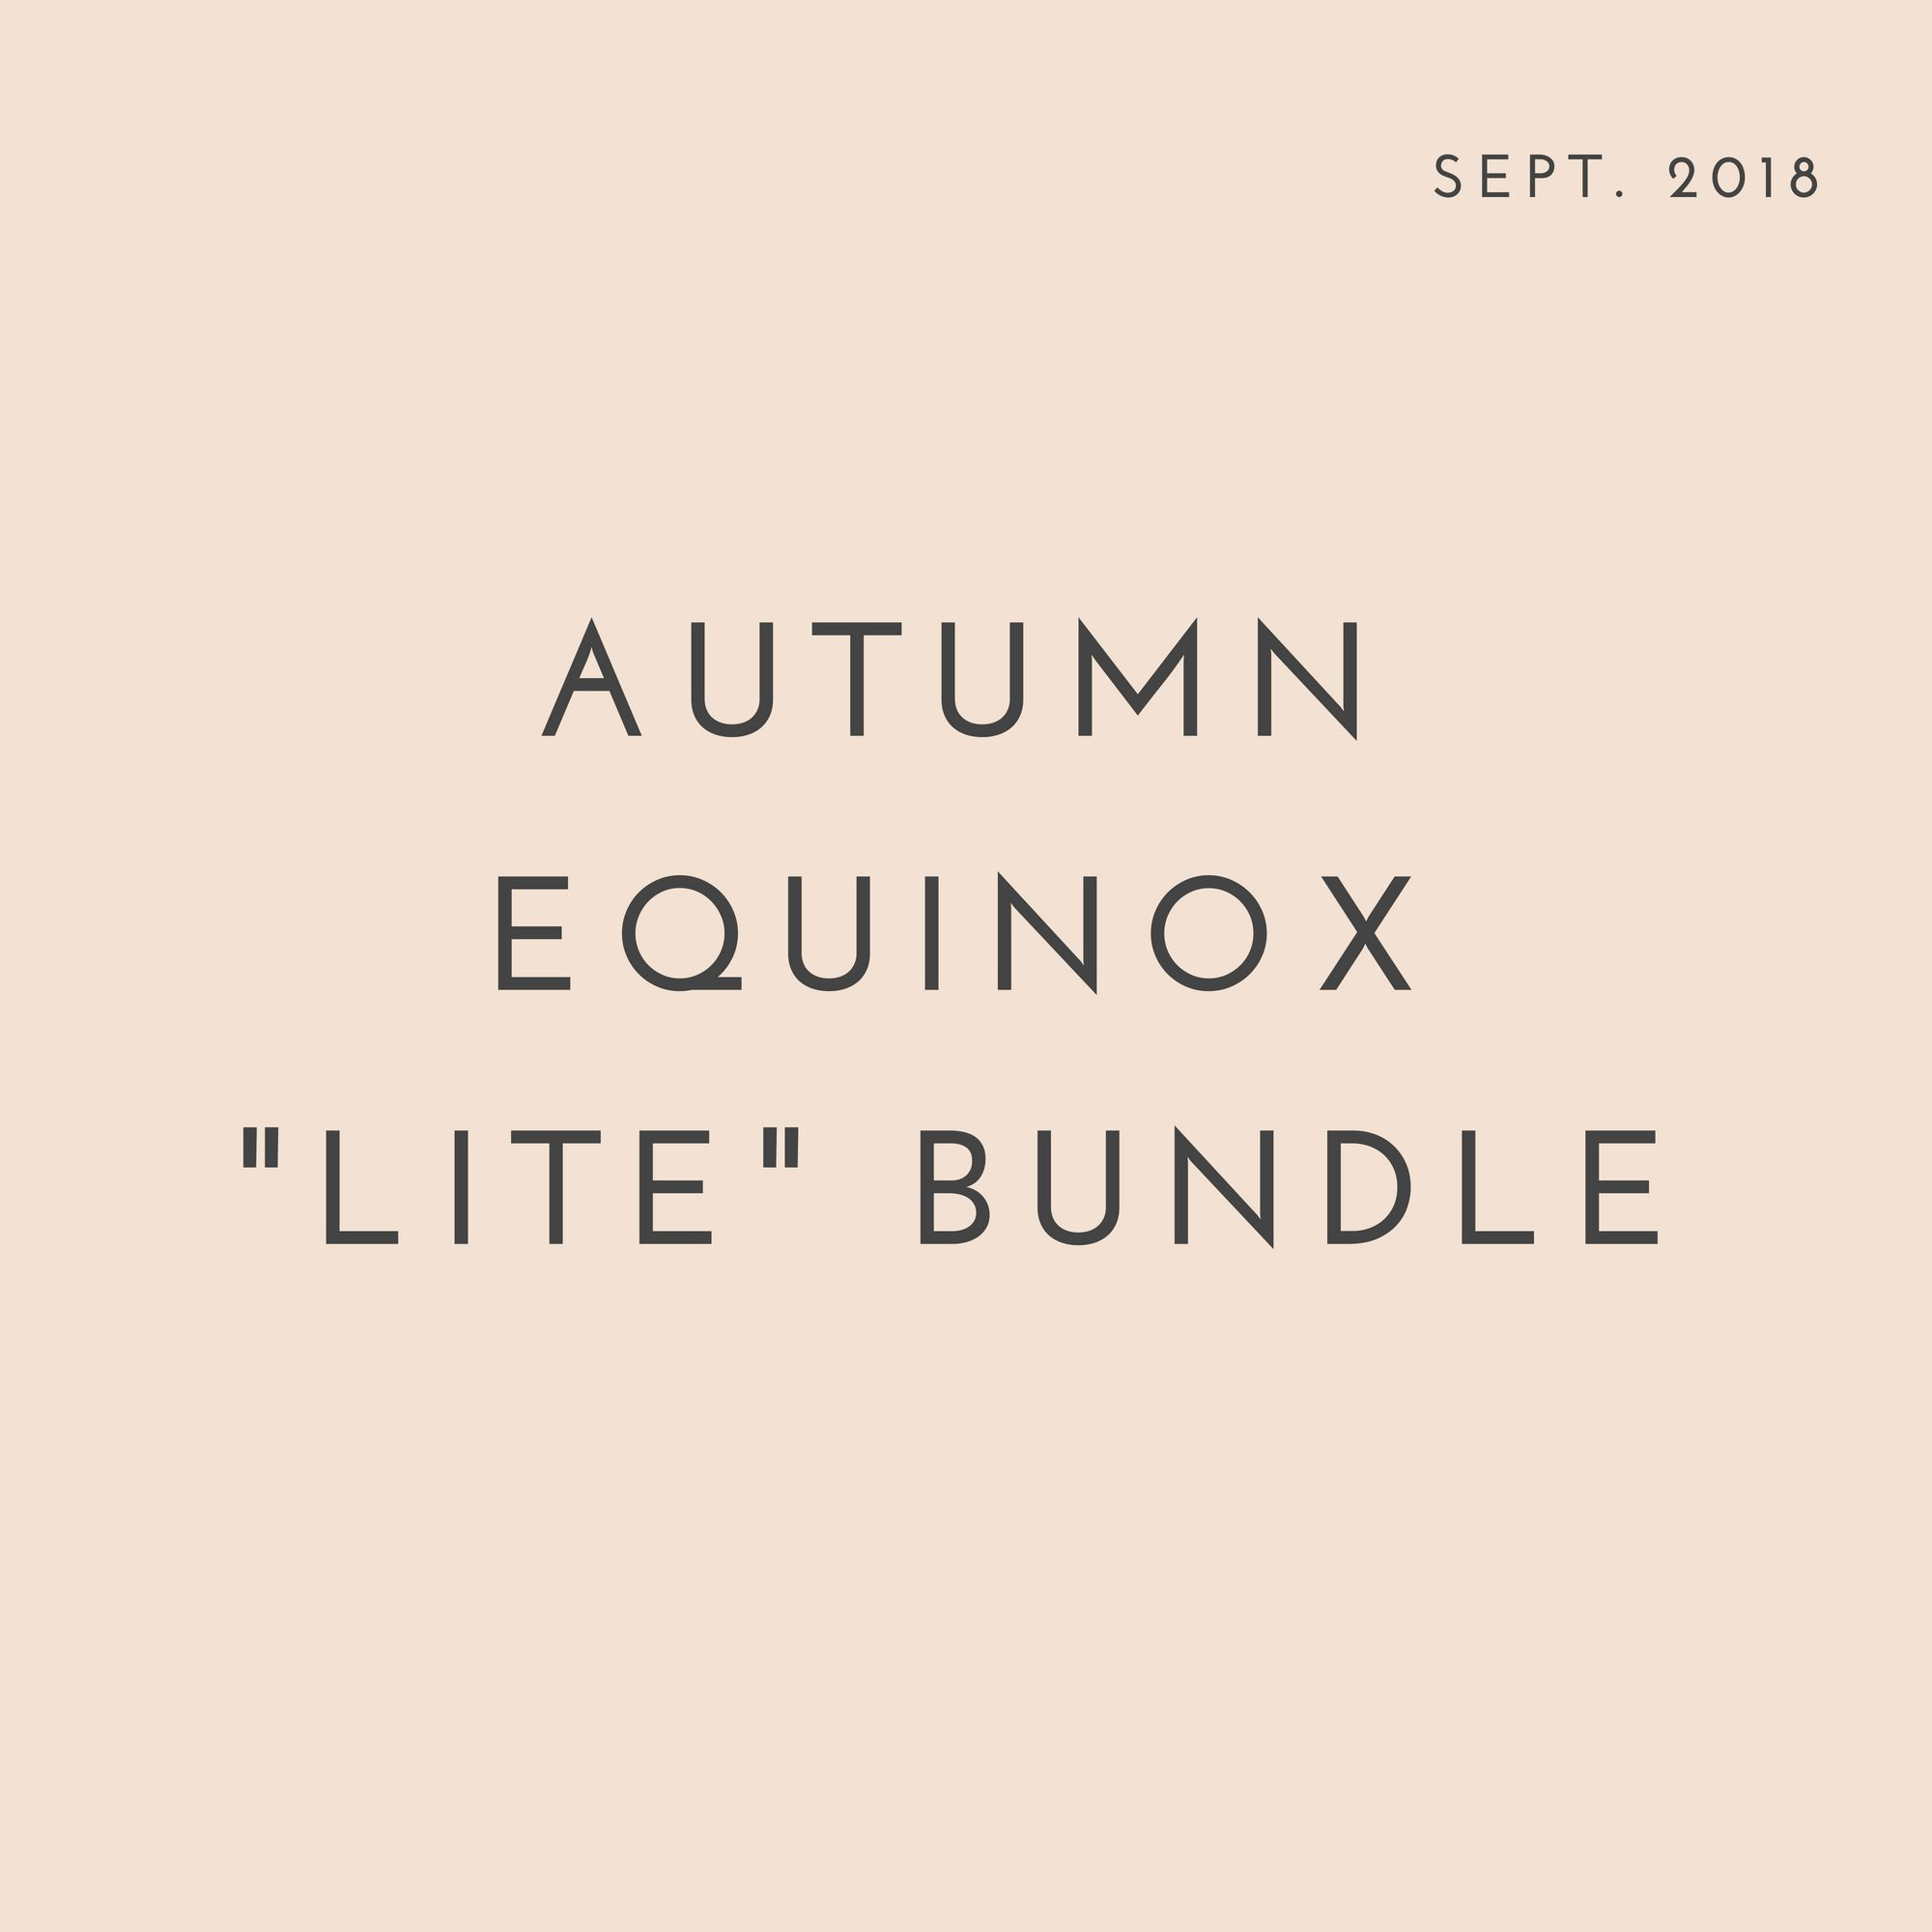 September 2018 - Autumn Equinox Meditation, Aromatherapy Blend, & Fall Playlist #autumnalequinox